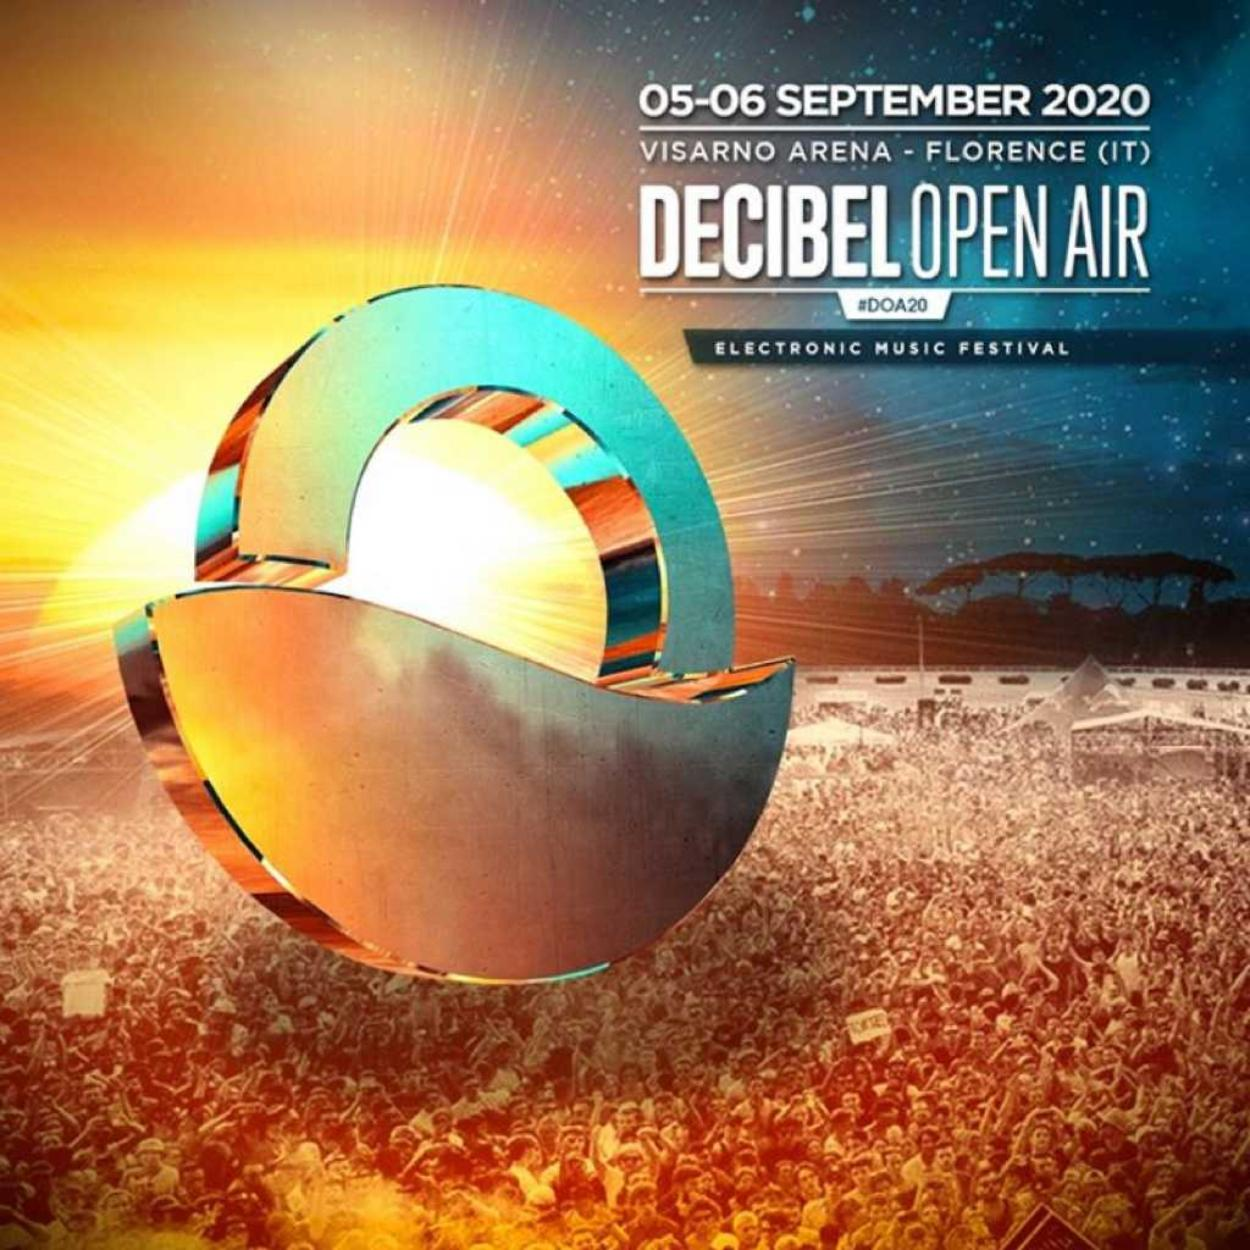 decibel open air 2020 - official event